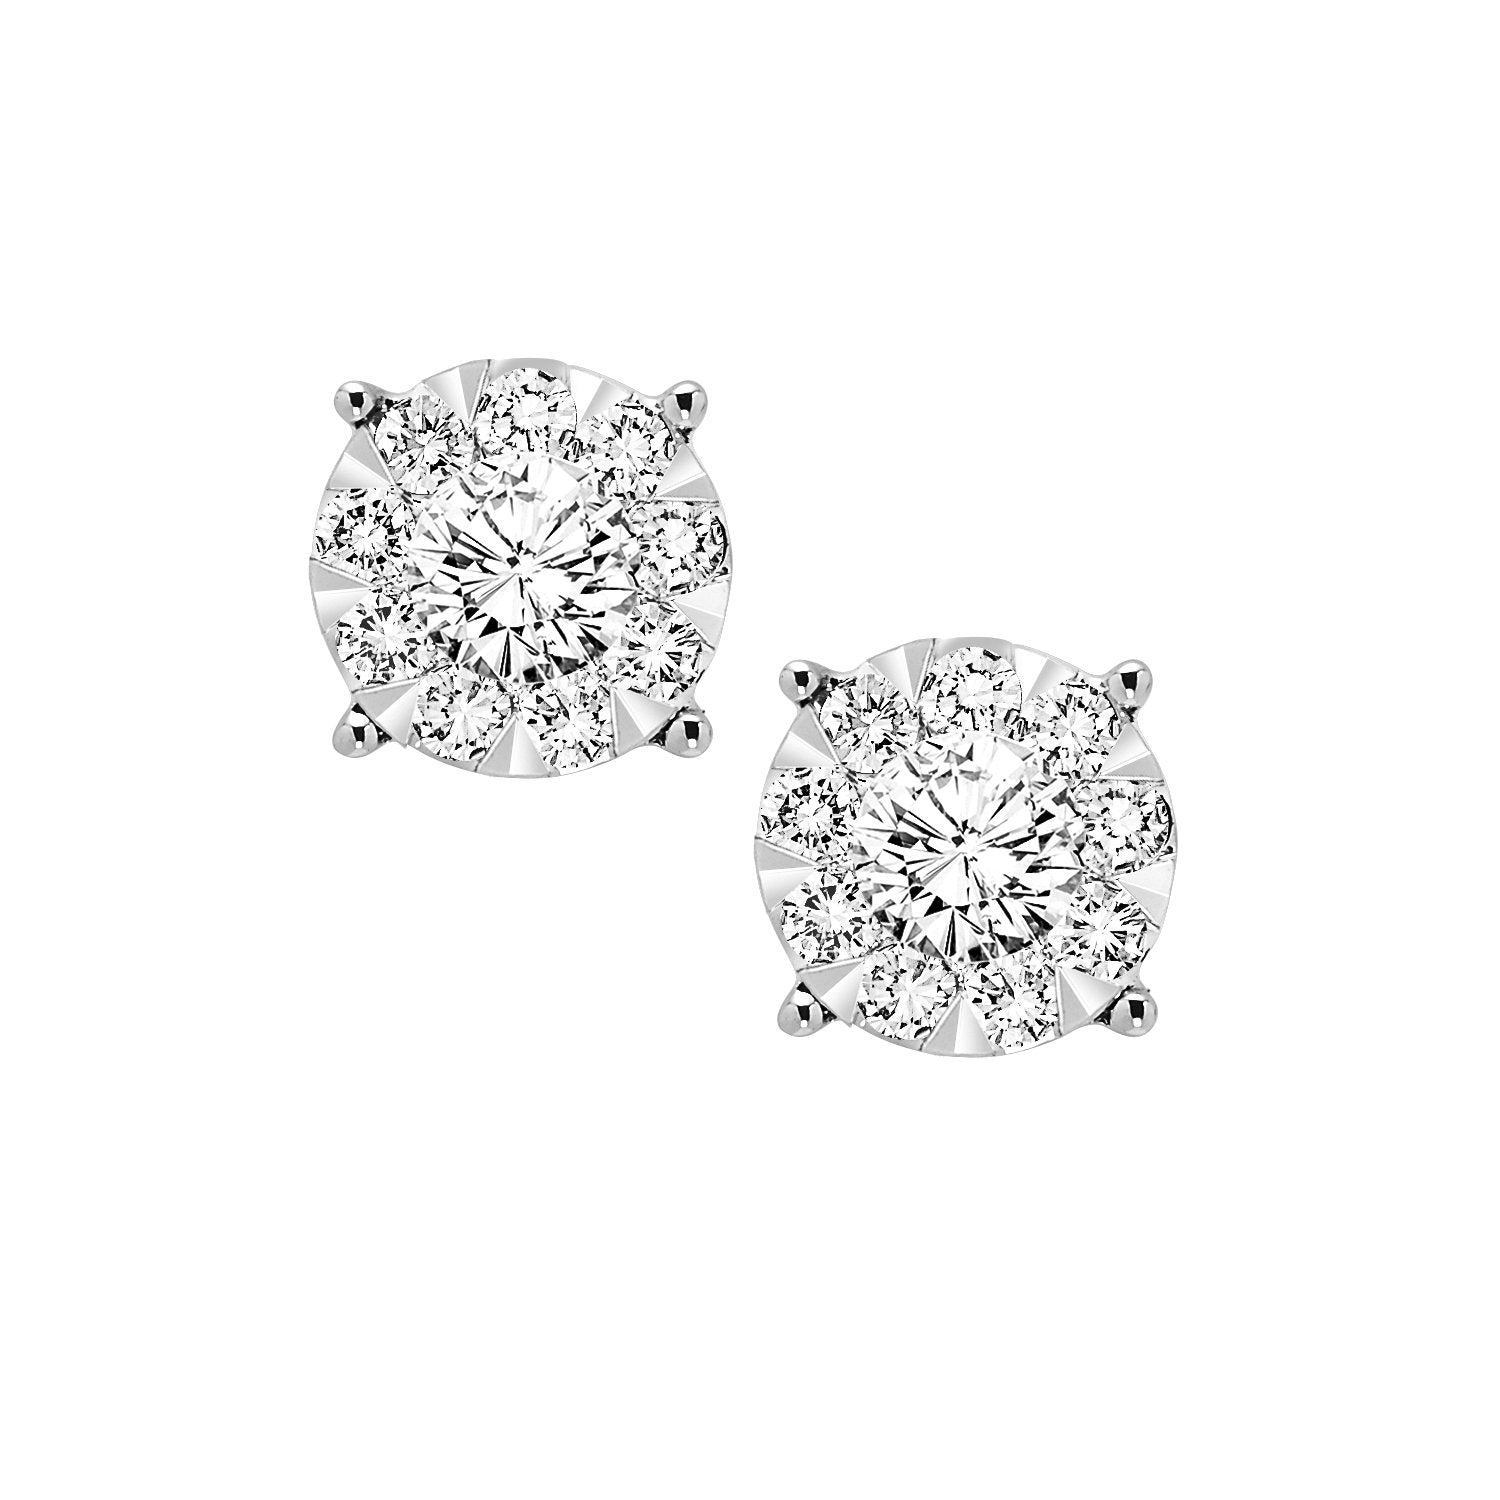 14KT White Gold Diamond Cluster Earrings